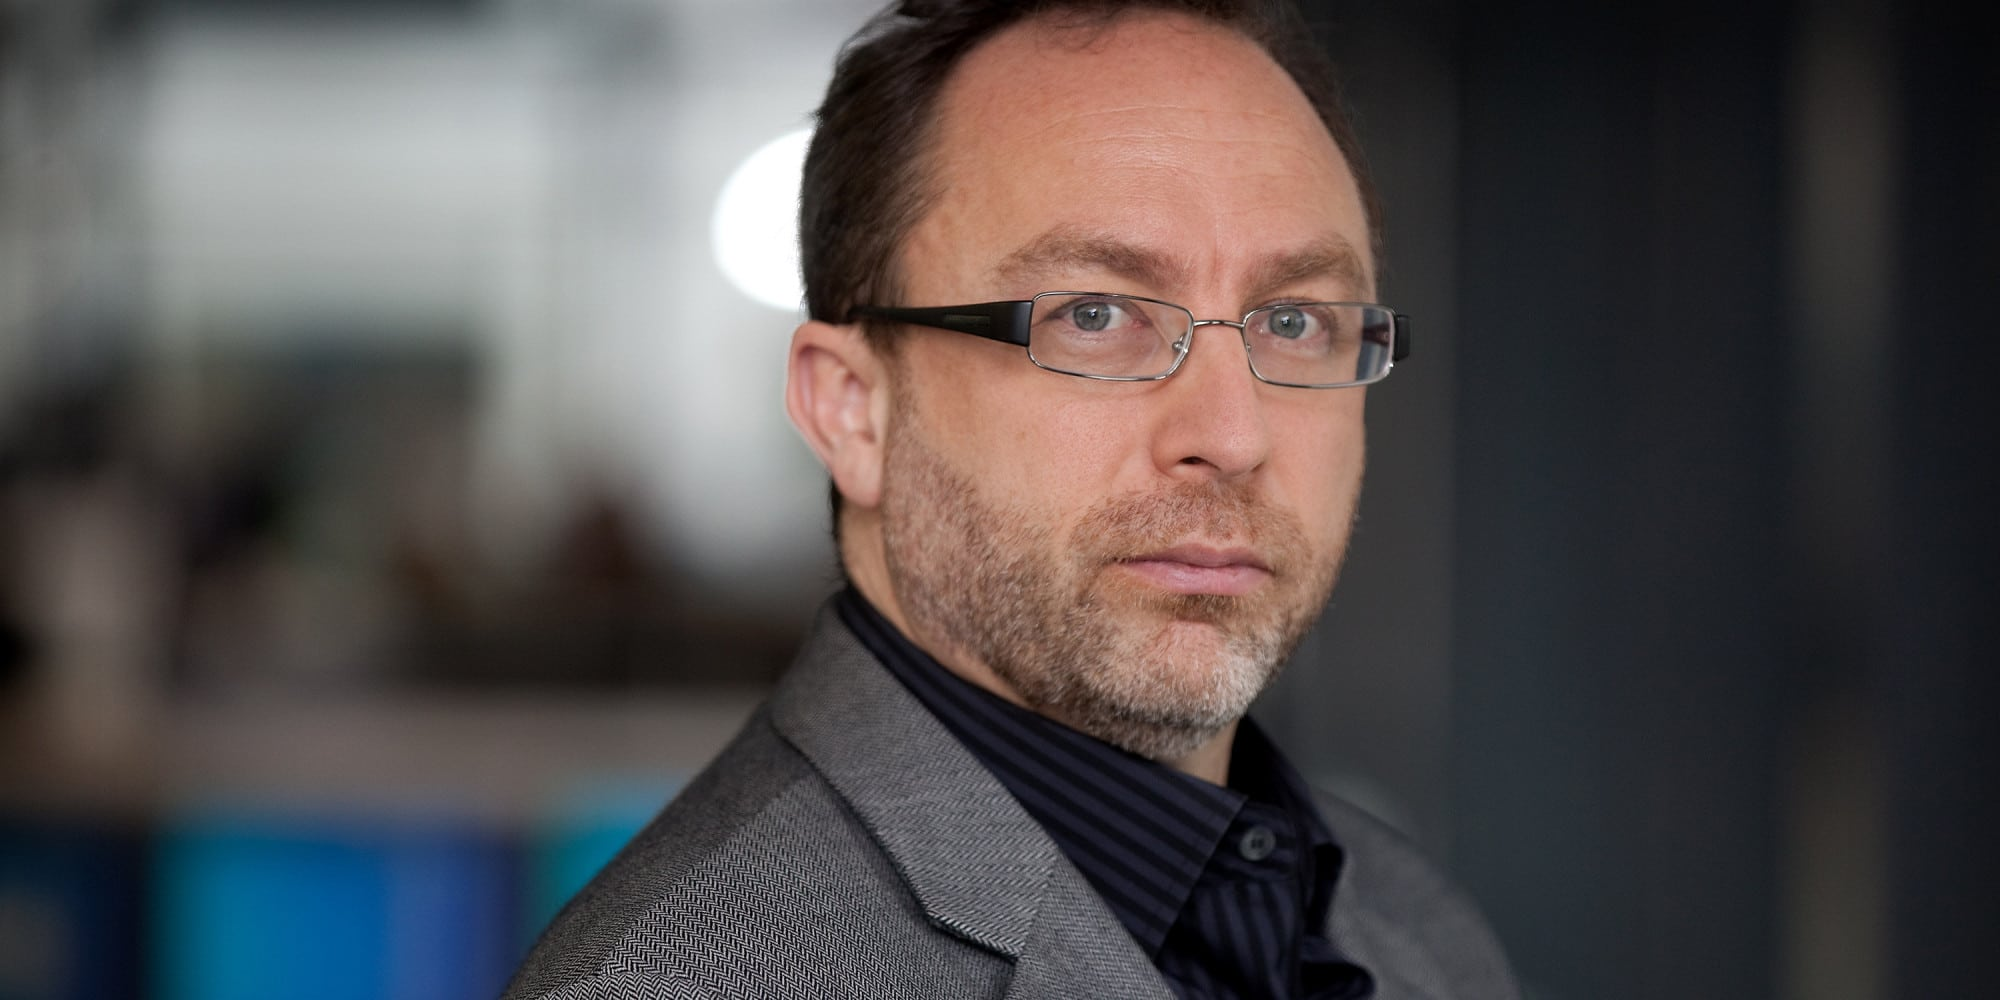 jimmy wales Jimmy wales says icos are a fad that are a waste of investor time and money.